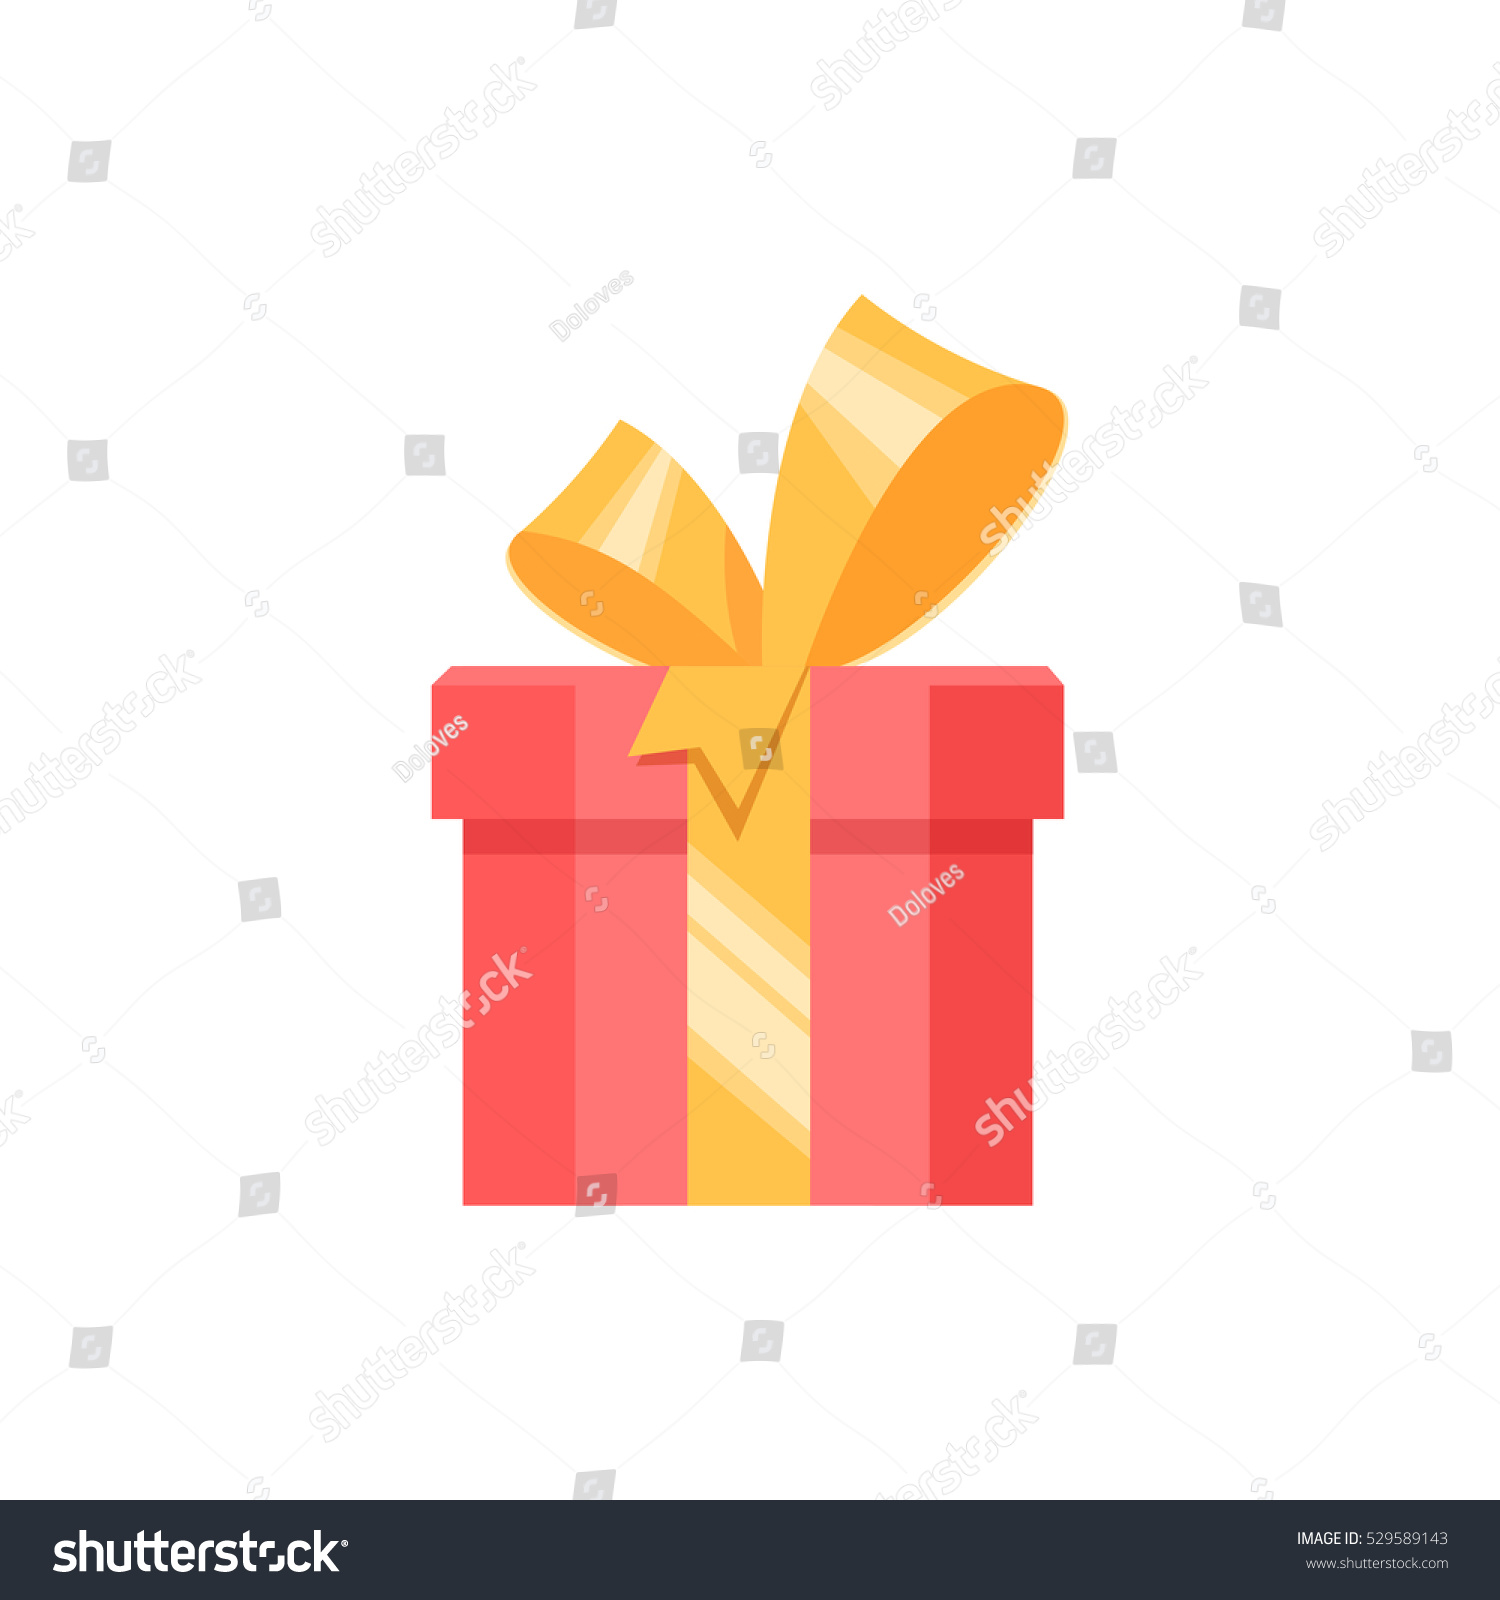 Red gift box present surprise with yellow bow on white background Vector illustration element banner poster flyer greeting card